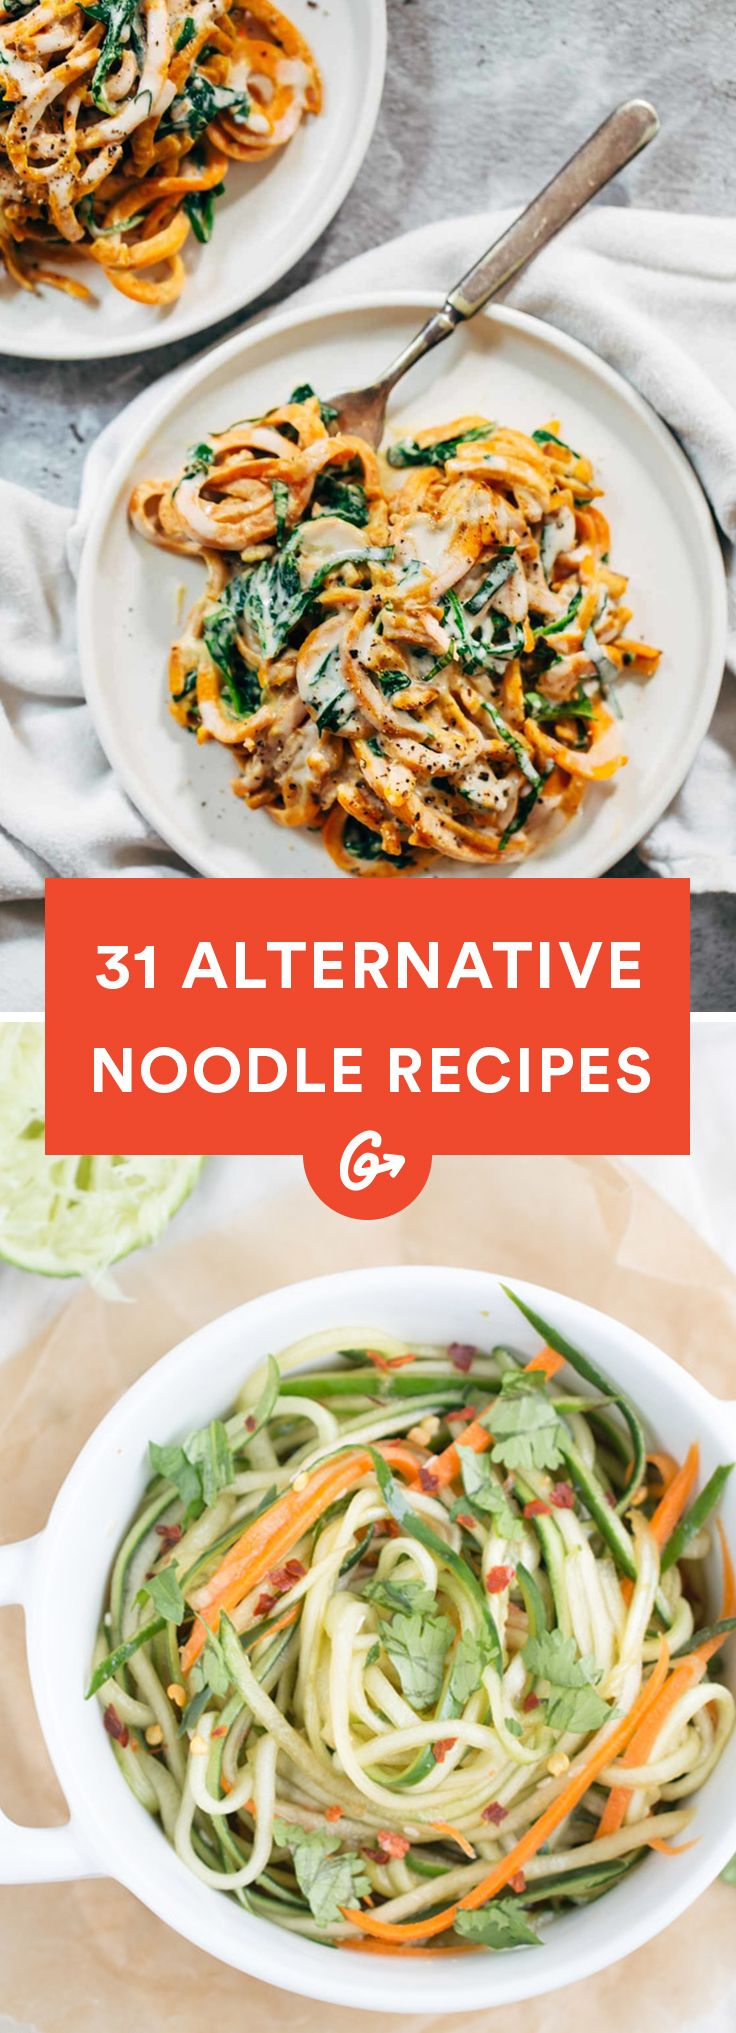 With noodles made from vegetables, beans, and even fruit, these creative and super delicious... #vegetable #noodles http://greatist.com/eat/alternative-noodle-recipes